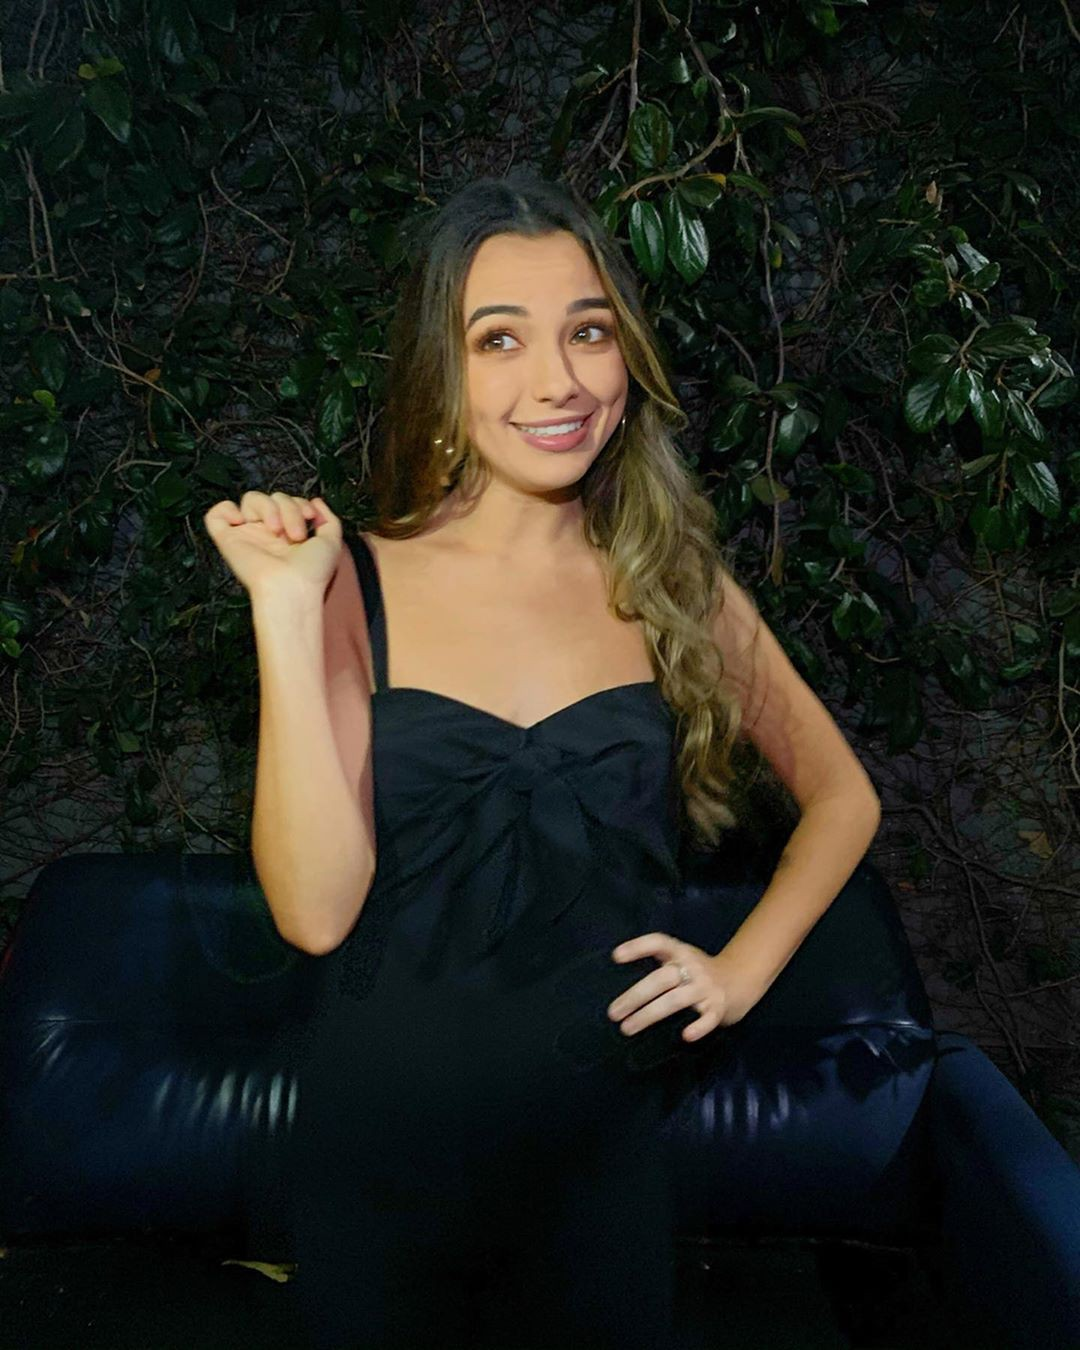 Vanessa Merrell dress colour outfit ideas 2020, photoshoot poses, Glossy Lips